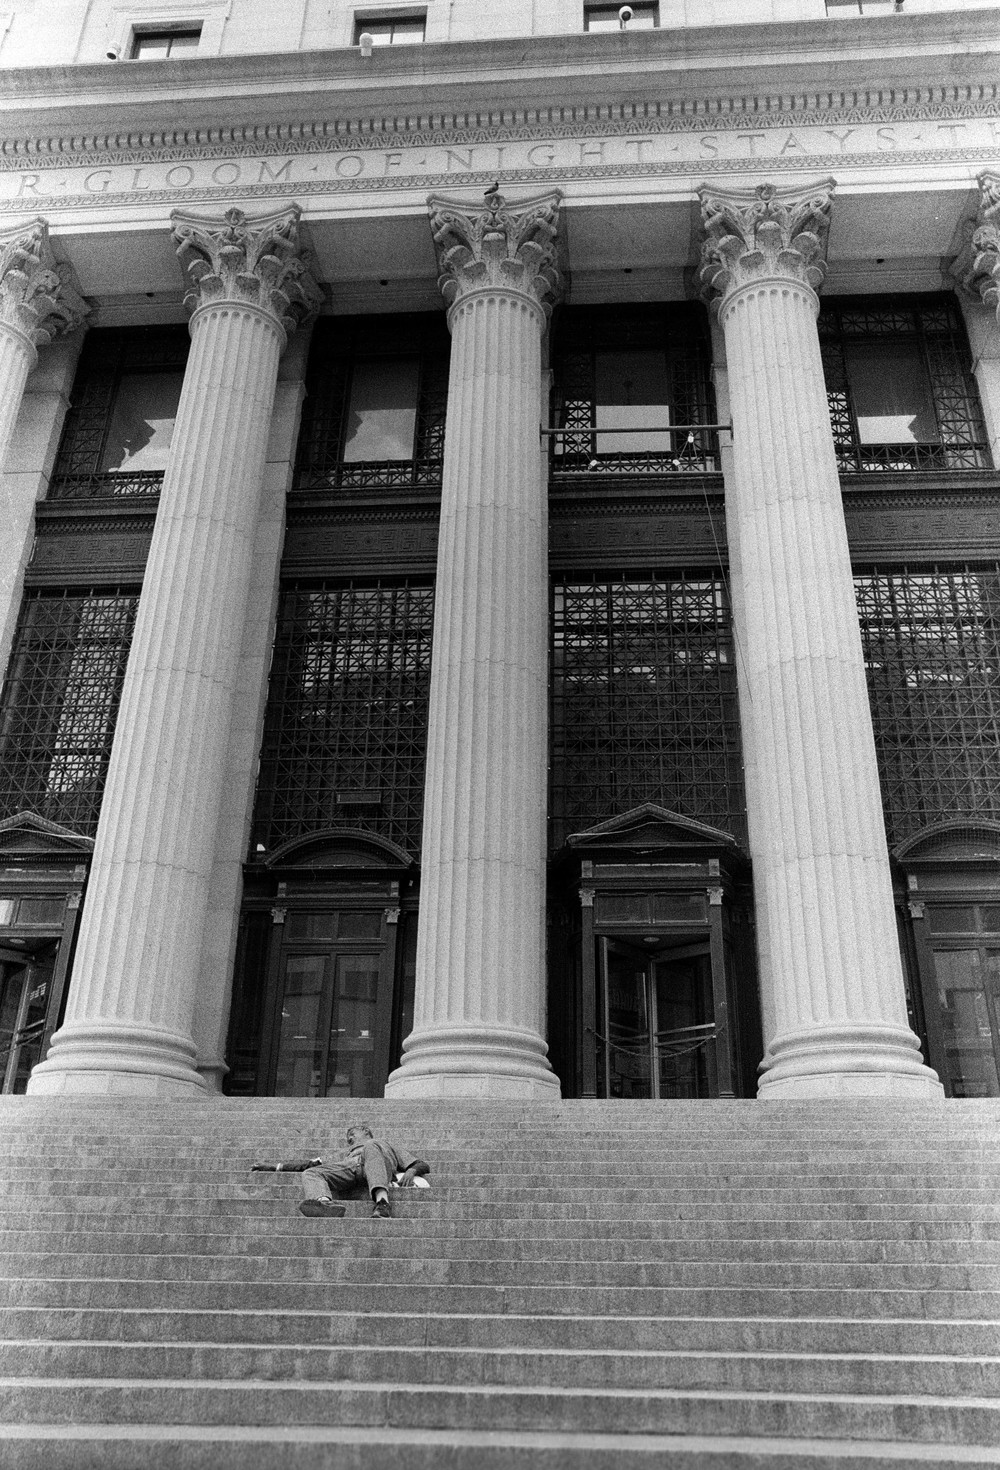 Nap on the Steps, NYC - 2014